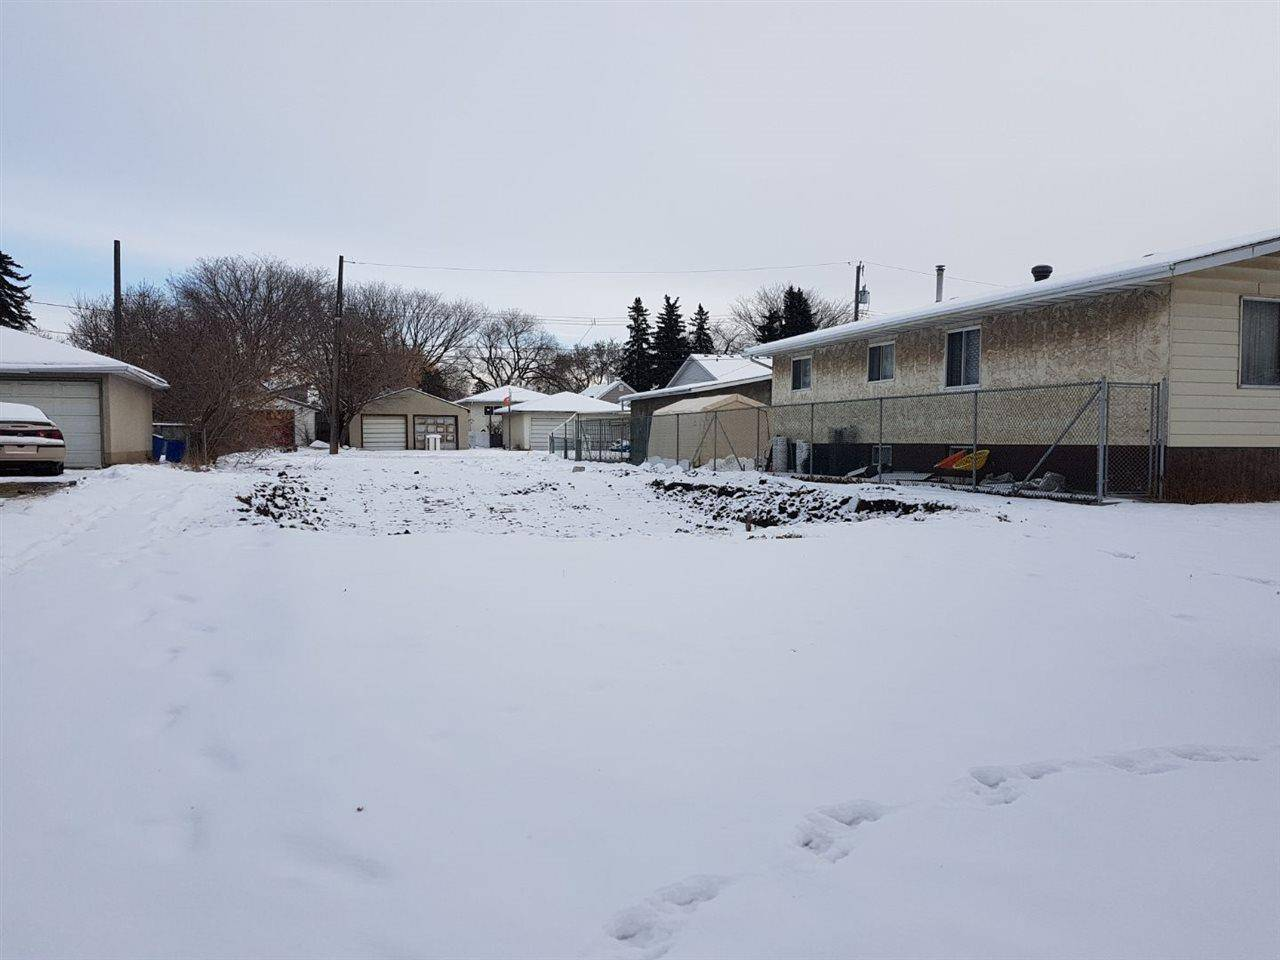 Residential property for sale at 12429 89 St Nw Edmonton Alberta - MLS: E4182235